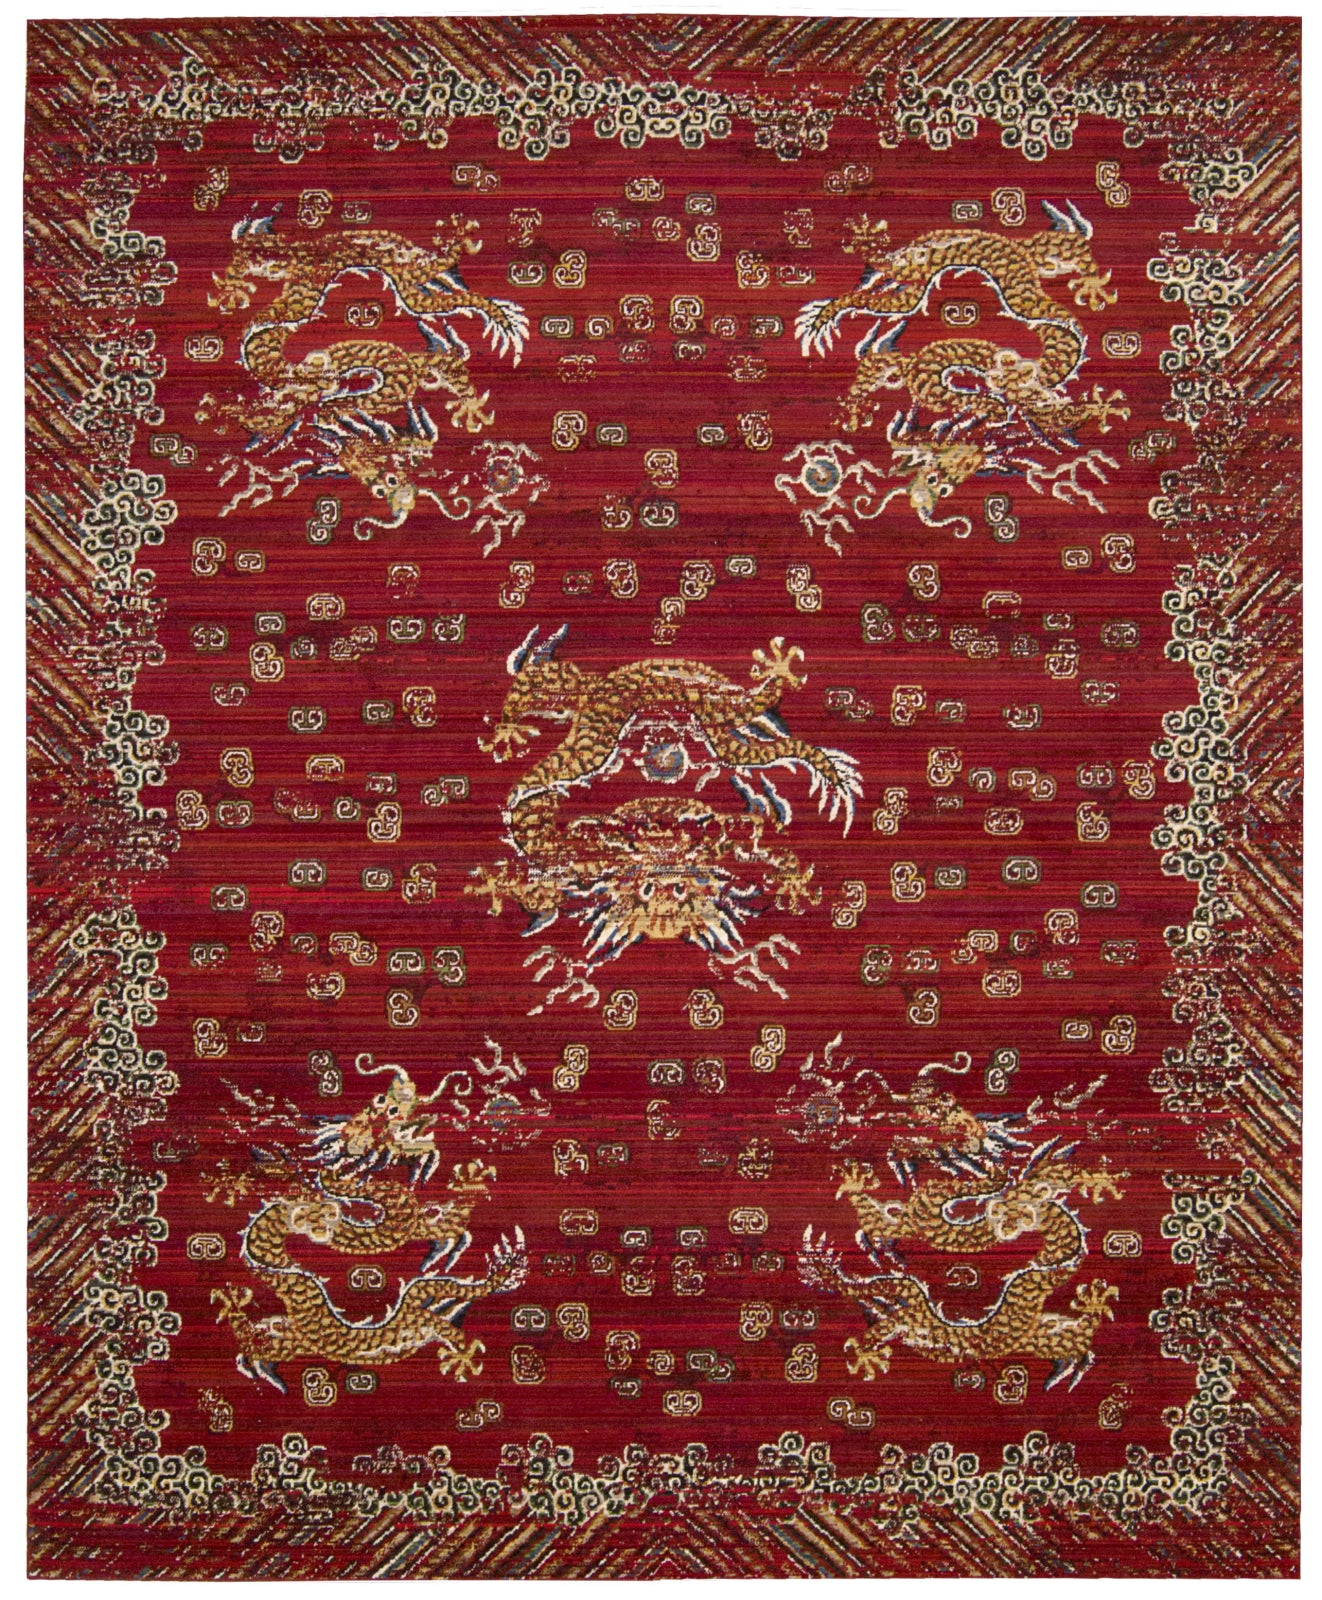 Nourison Dynasty DYN04 Emperor Oxblood Area Rug by Barclay Butera main image